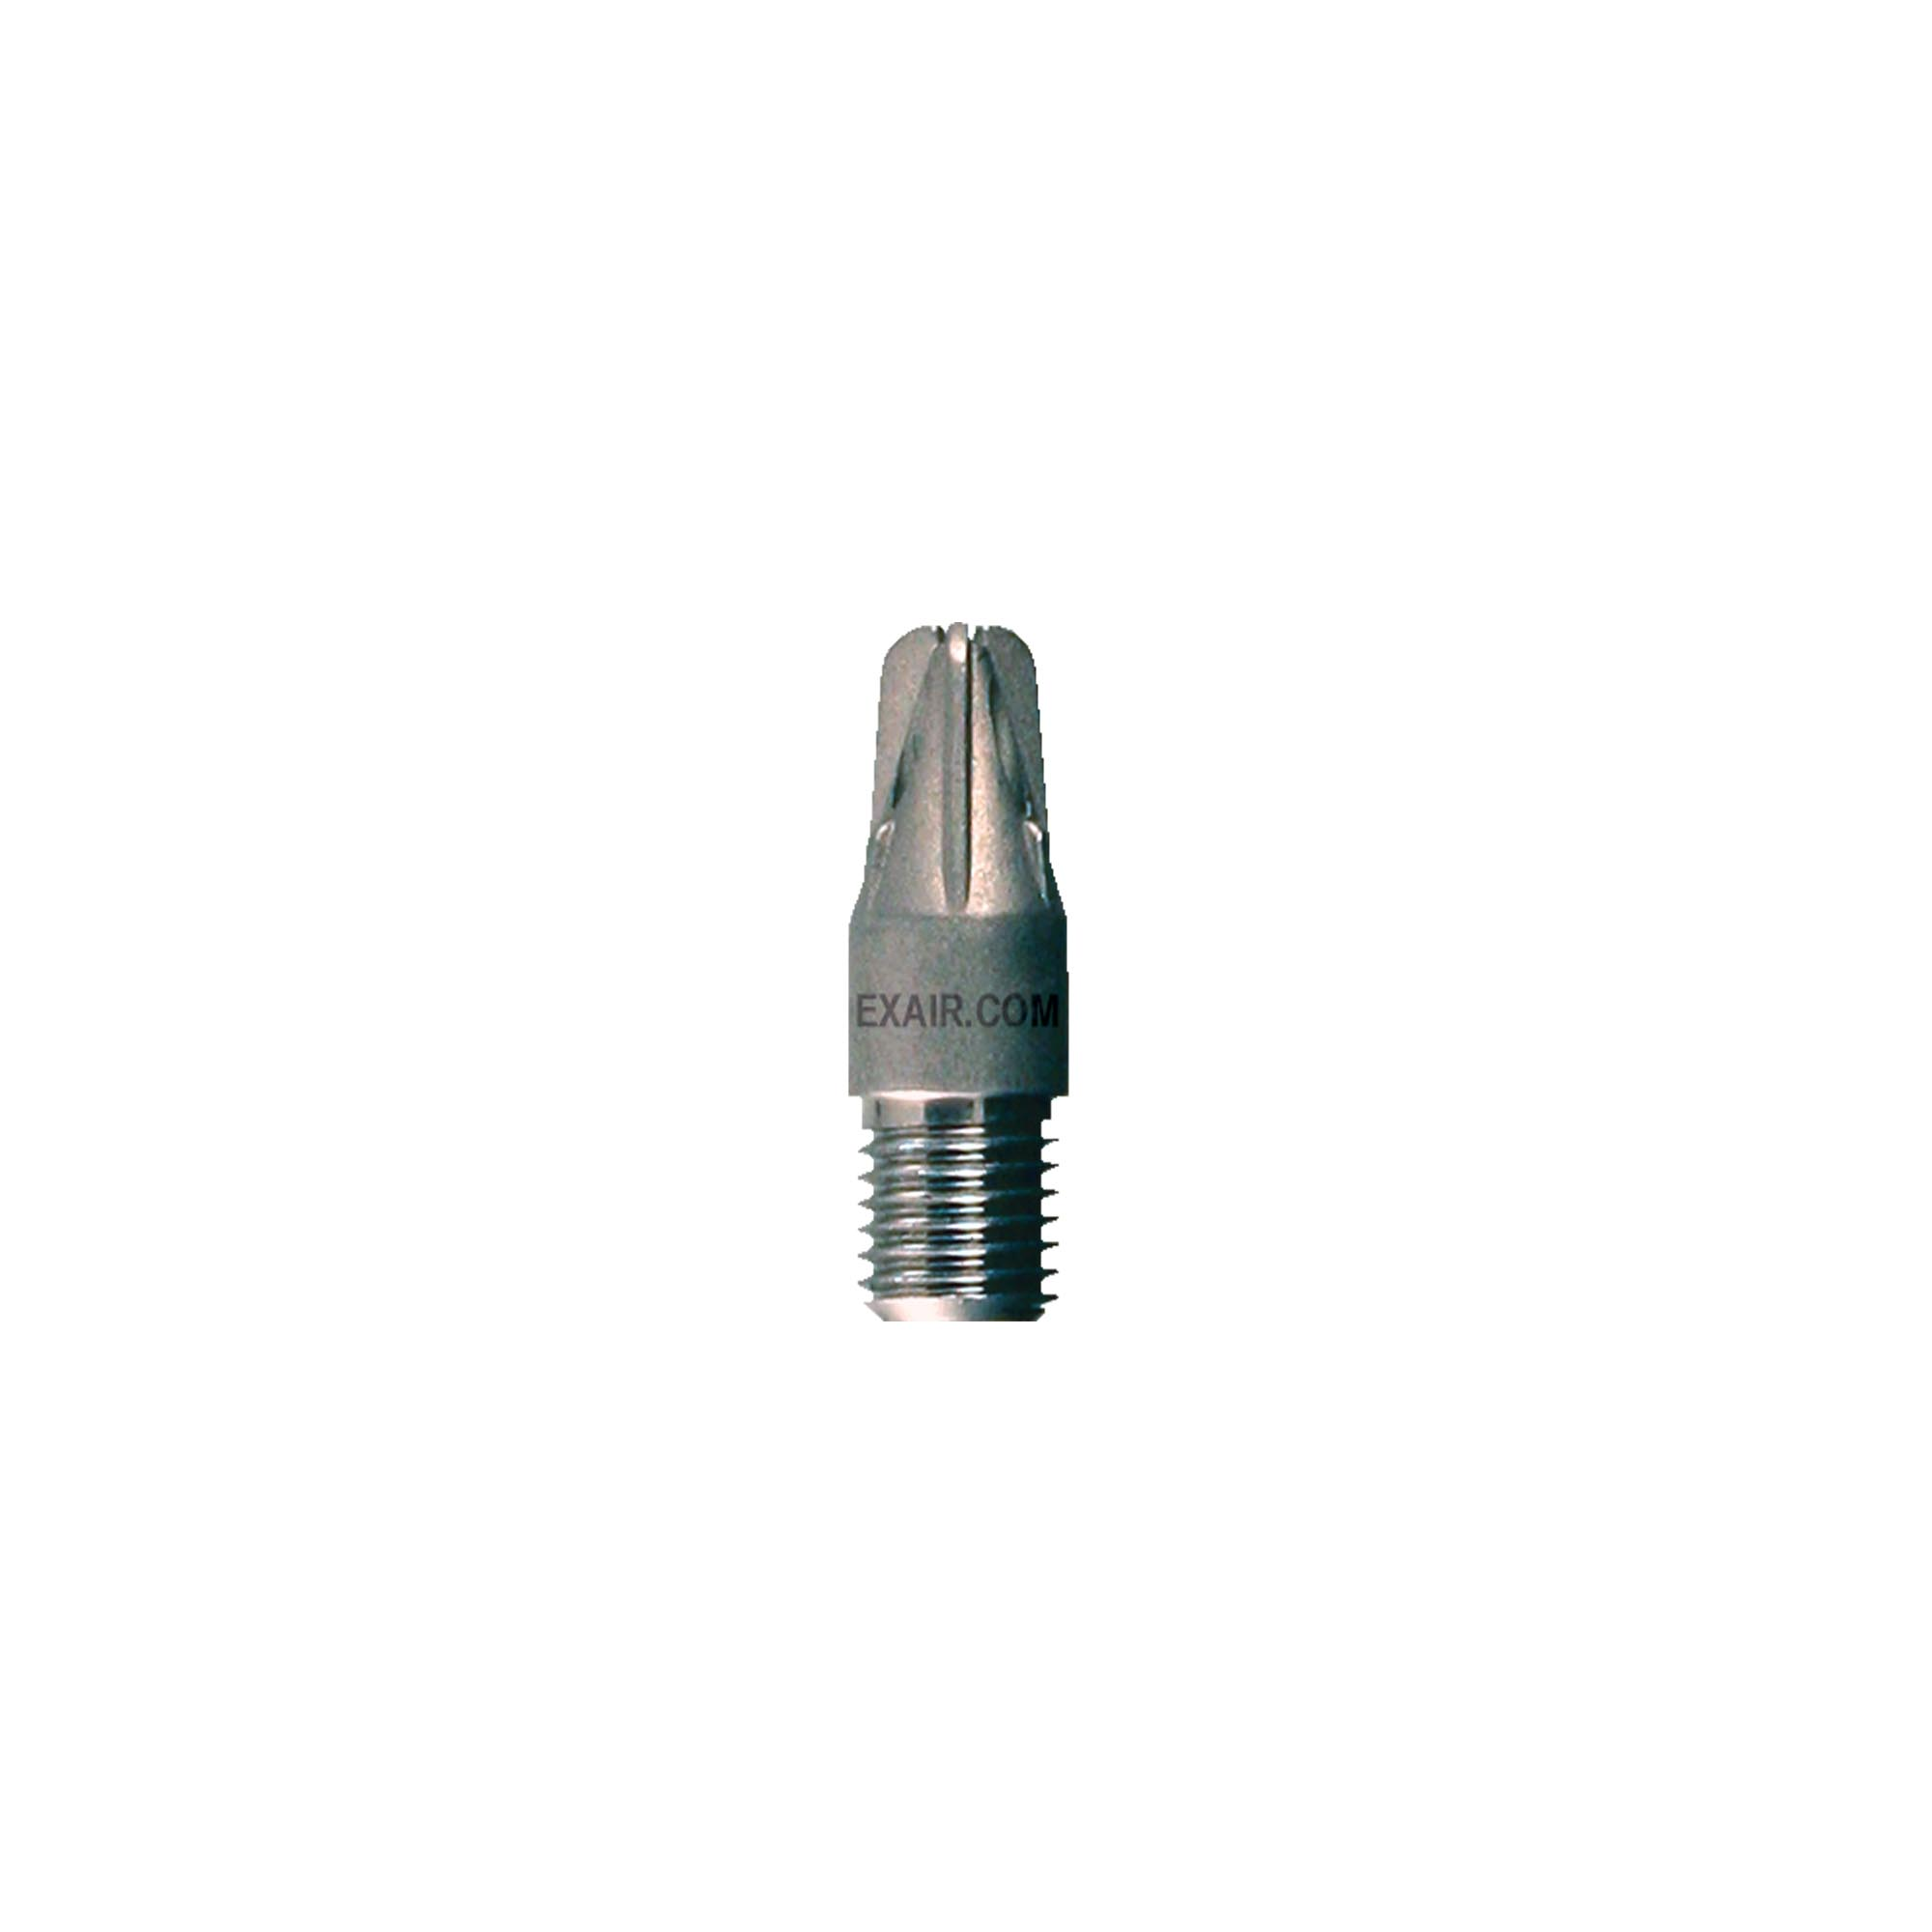 Stainless Steel Nano Super Air Nozzle